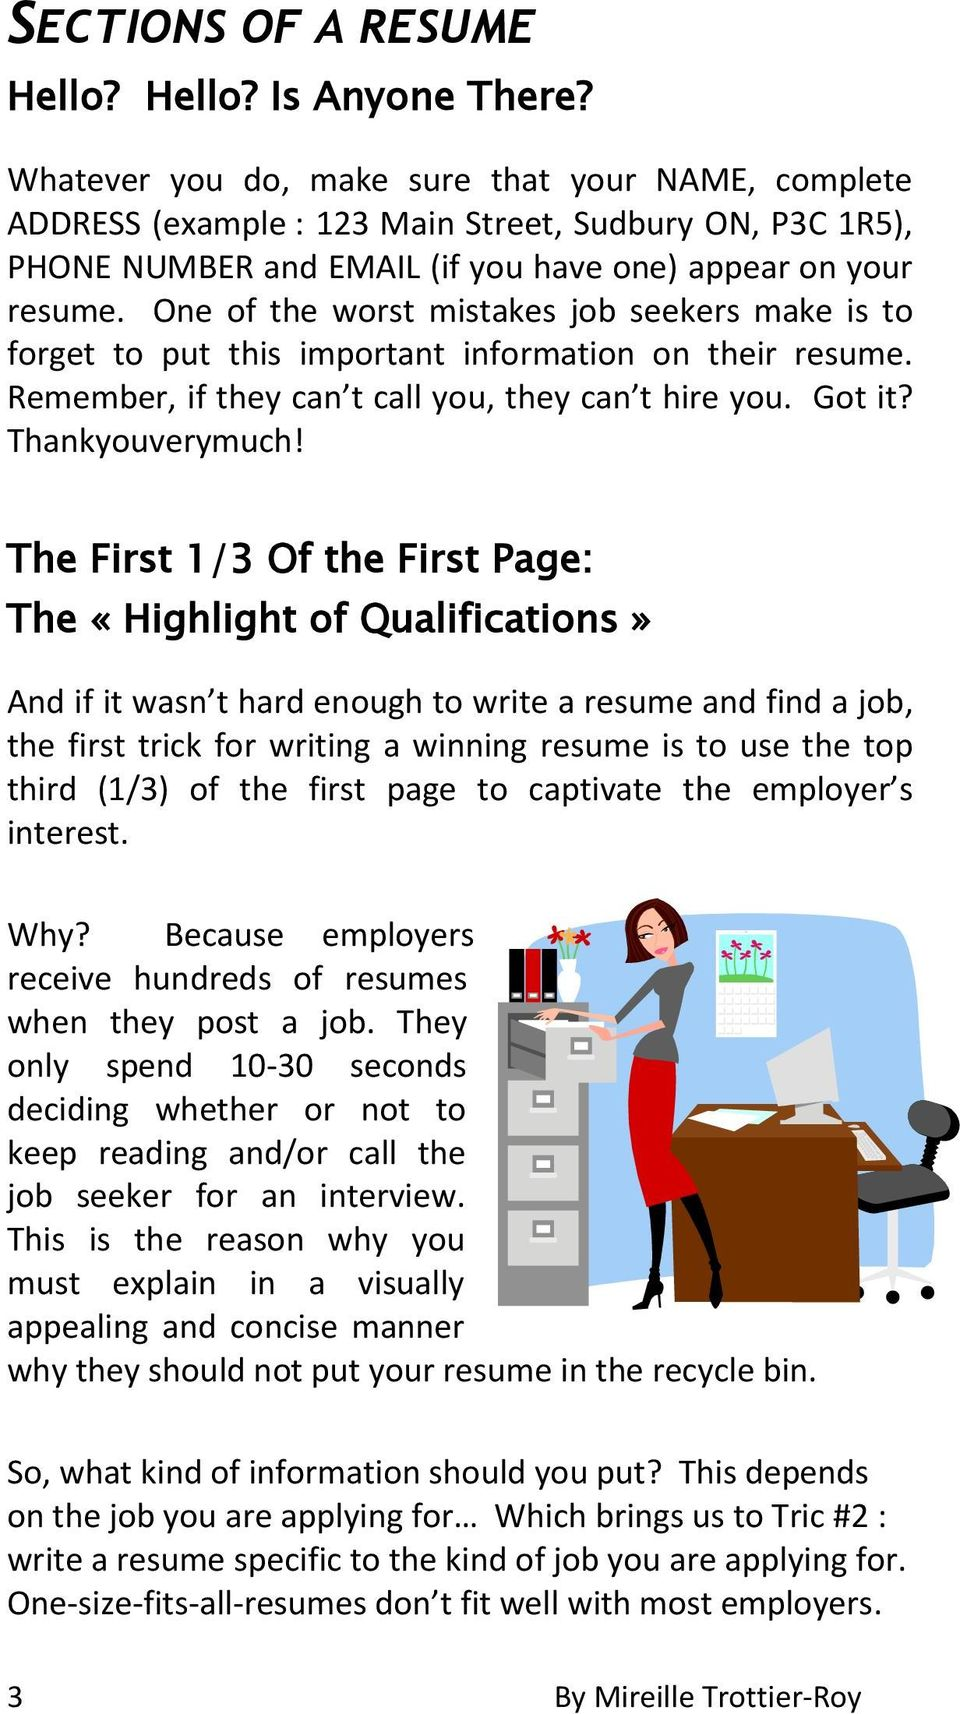 One of the worst mistakes job seekers make is to forget to put this important information on their resume. Remember, if they can t call you, they can t hire you. Got it? Thankyouverymuch!